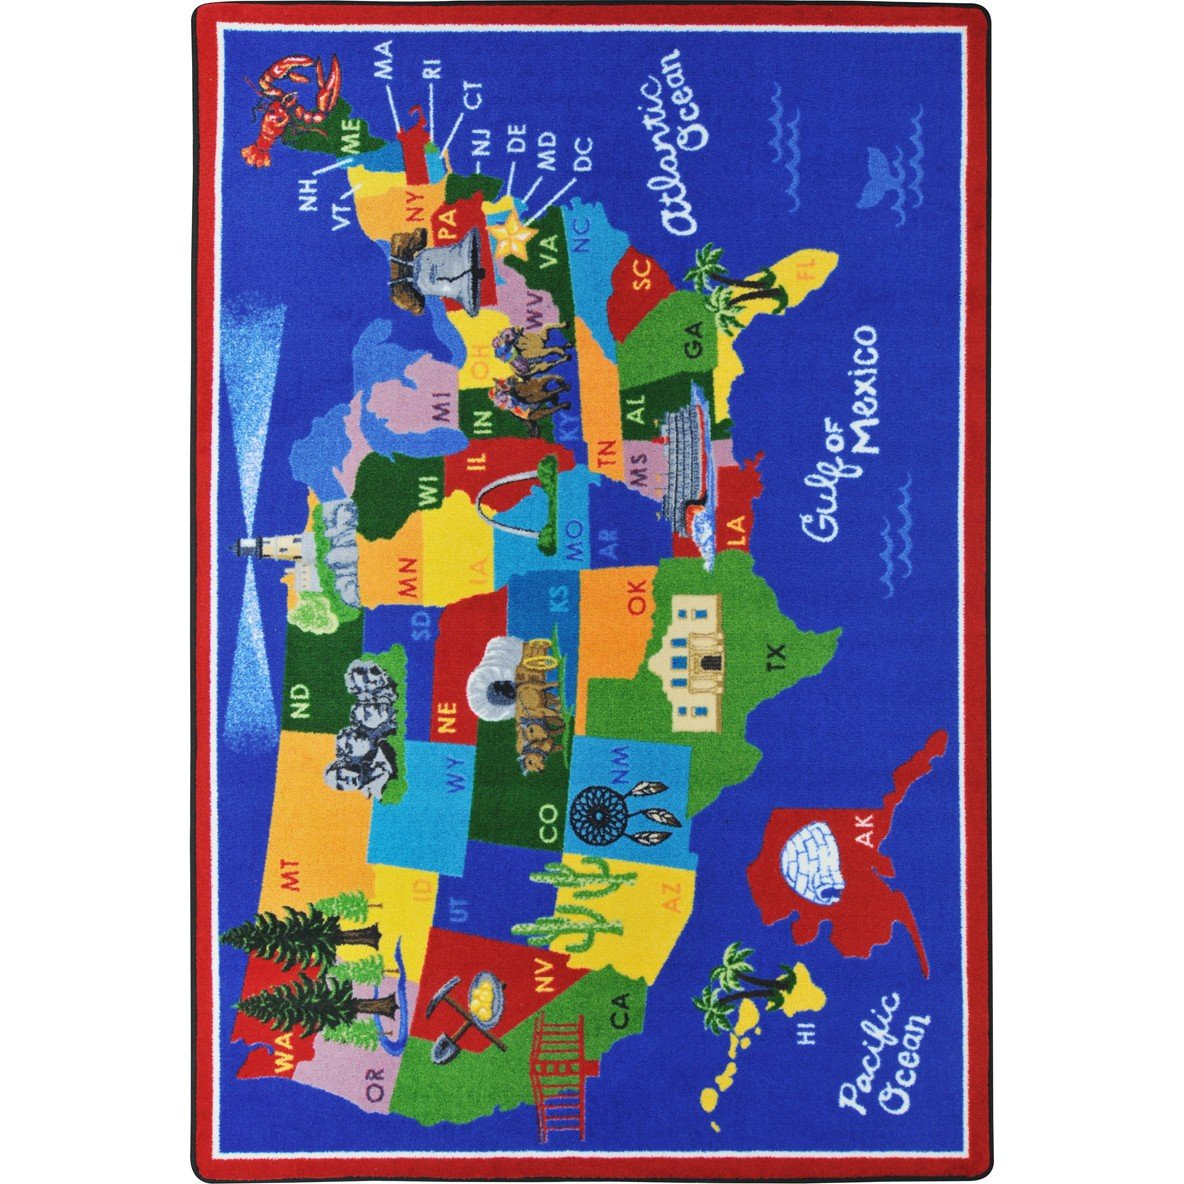 Joy Carpets Kid Essentials Geography & Environment America The Beautiful Rug, Multicolored, 10'9'' x 13'2'' by Joy Carpets